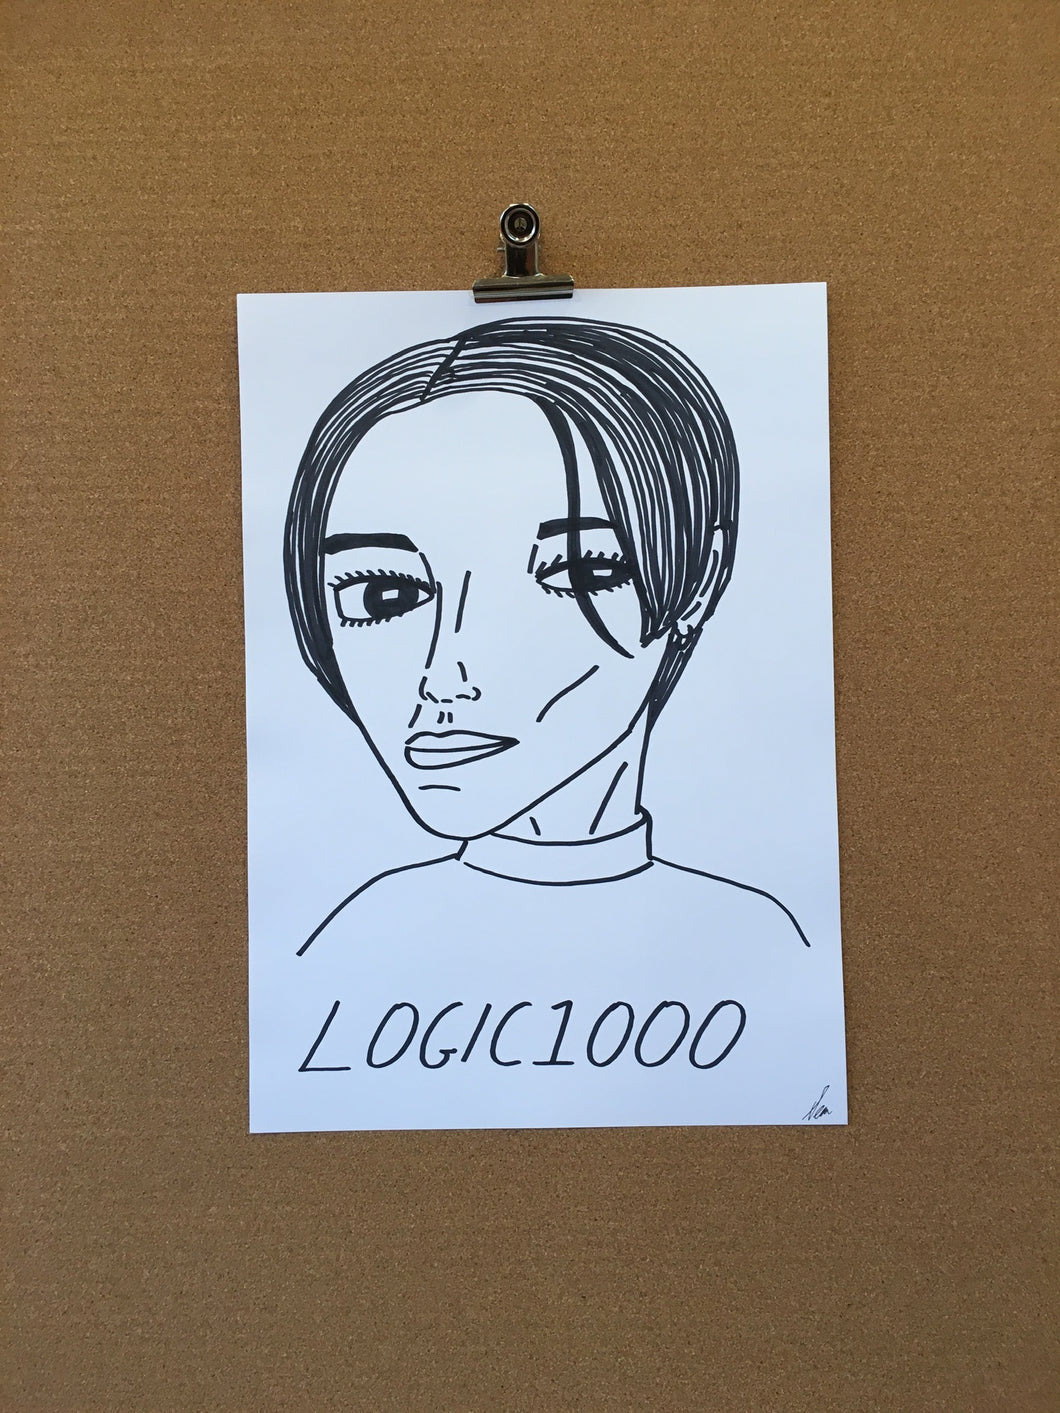 Badly Drawn Logic1000 - Original Drawing - A3.